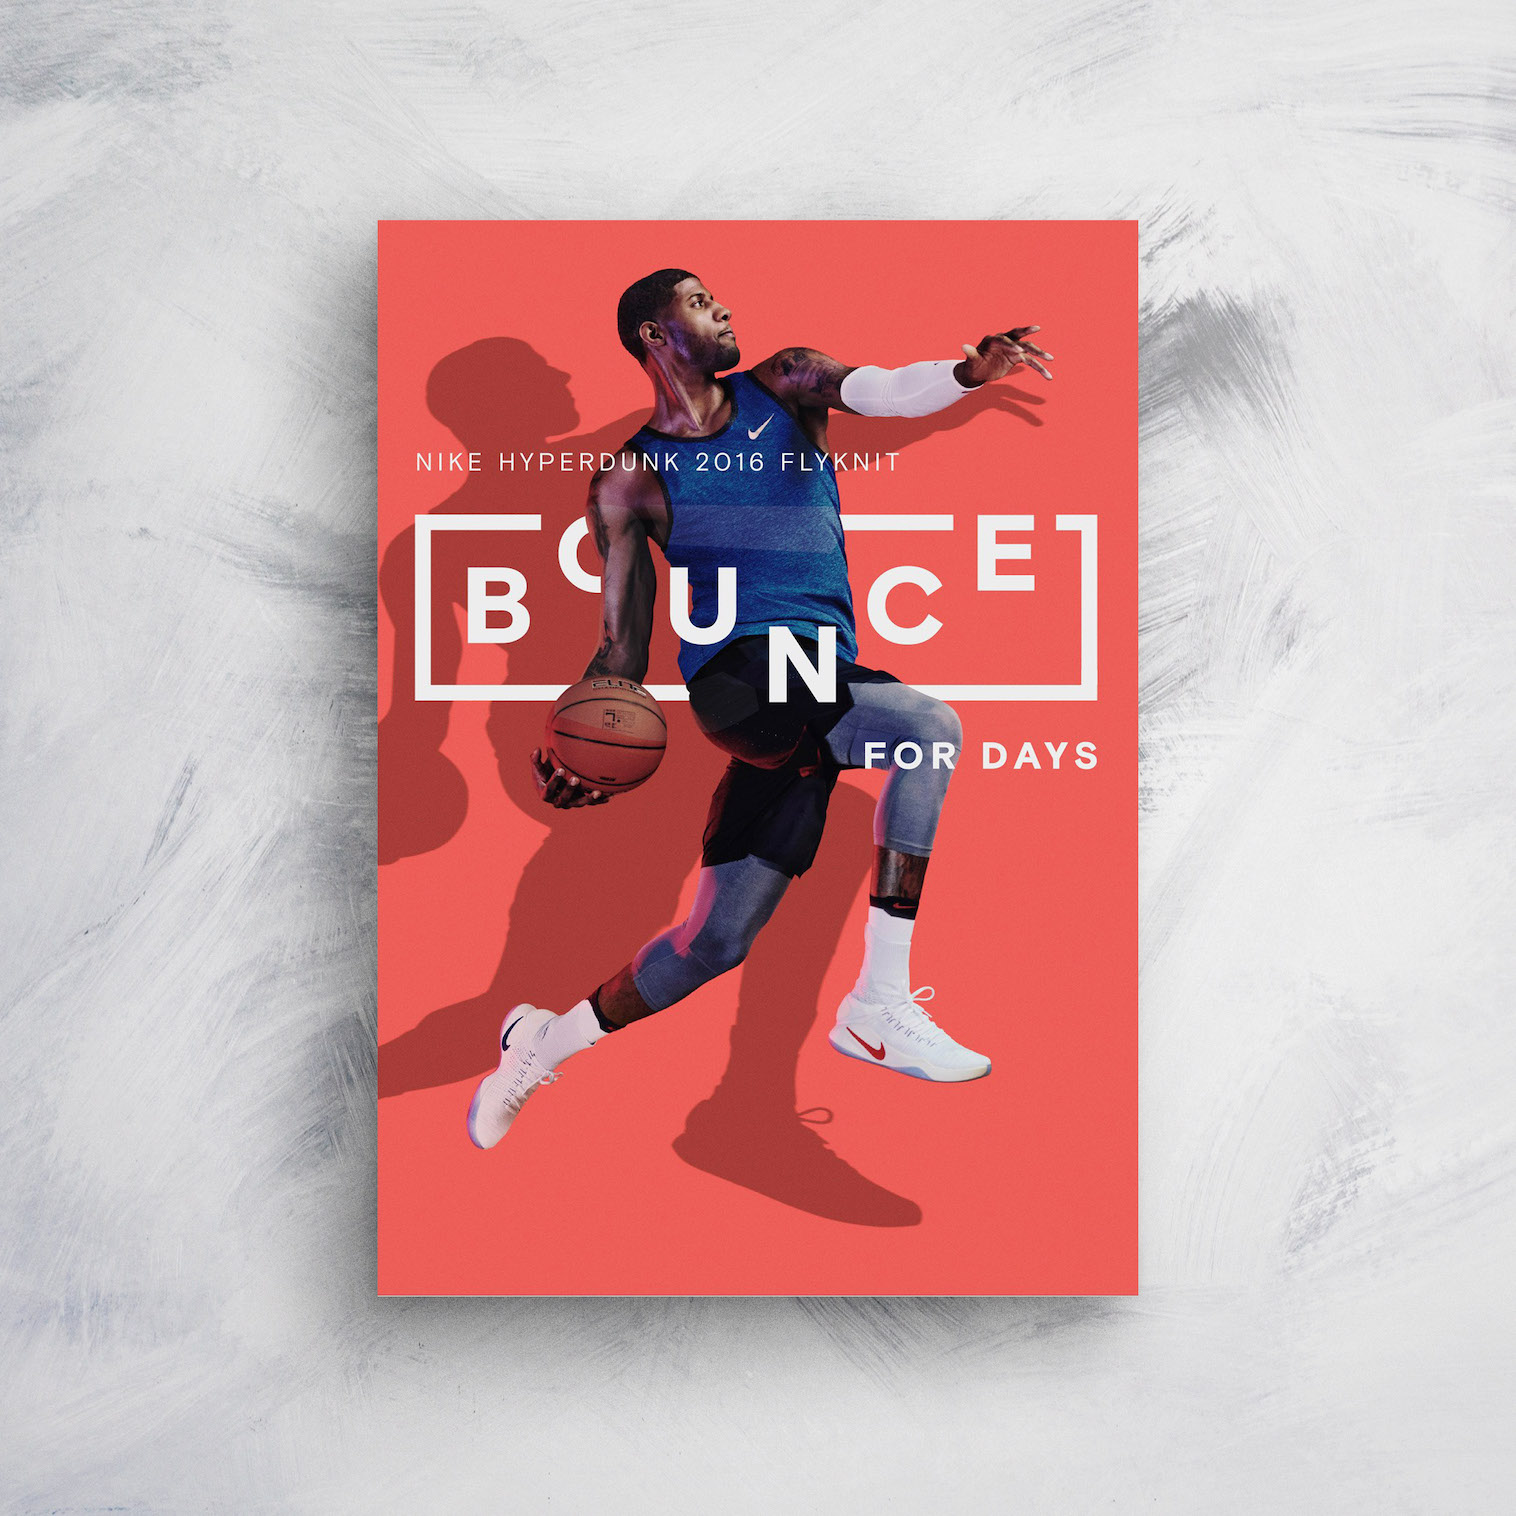 Nike Bounce For Days Product Poster Example Venngage